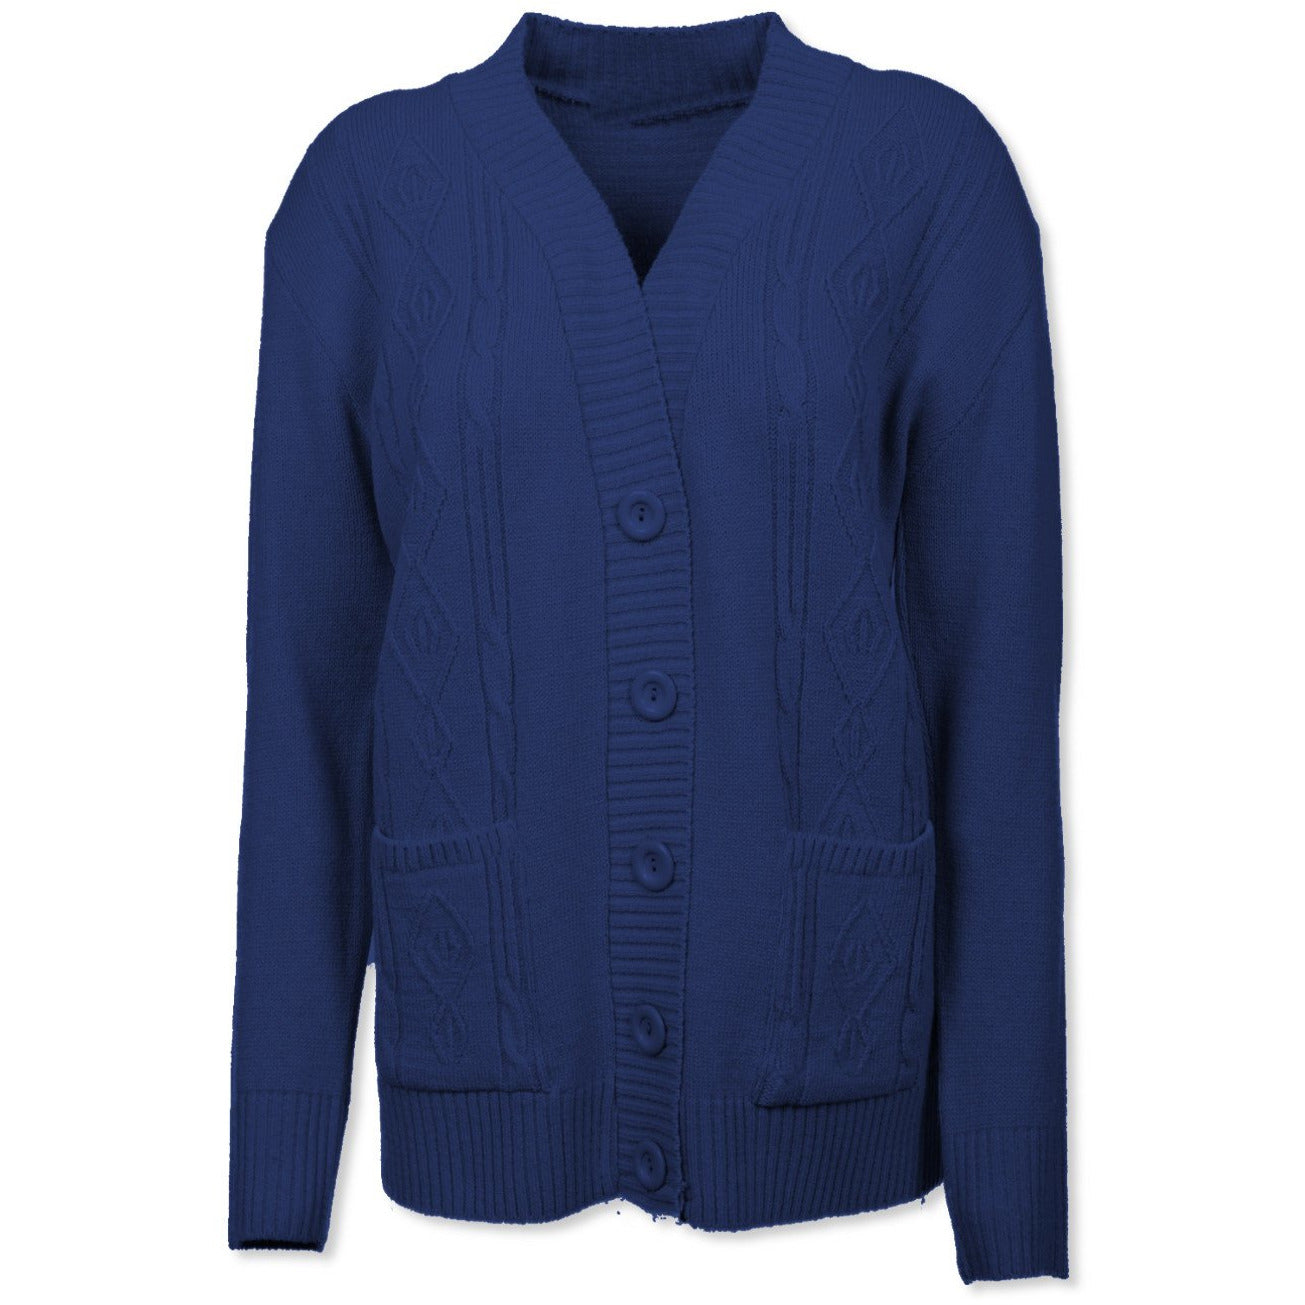 Navy Cable Knit Cardigan - Kirkwood of Scotland